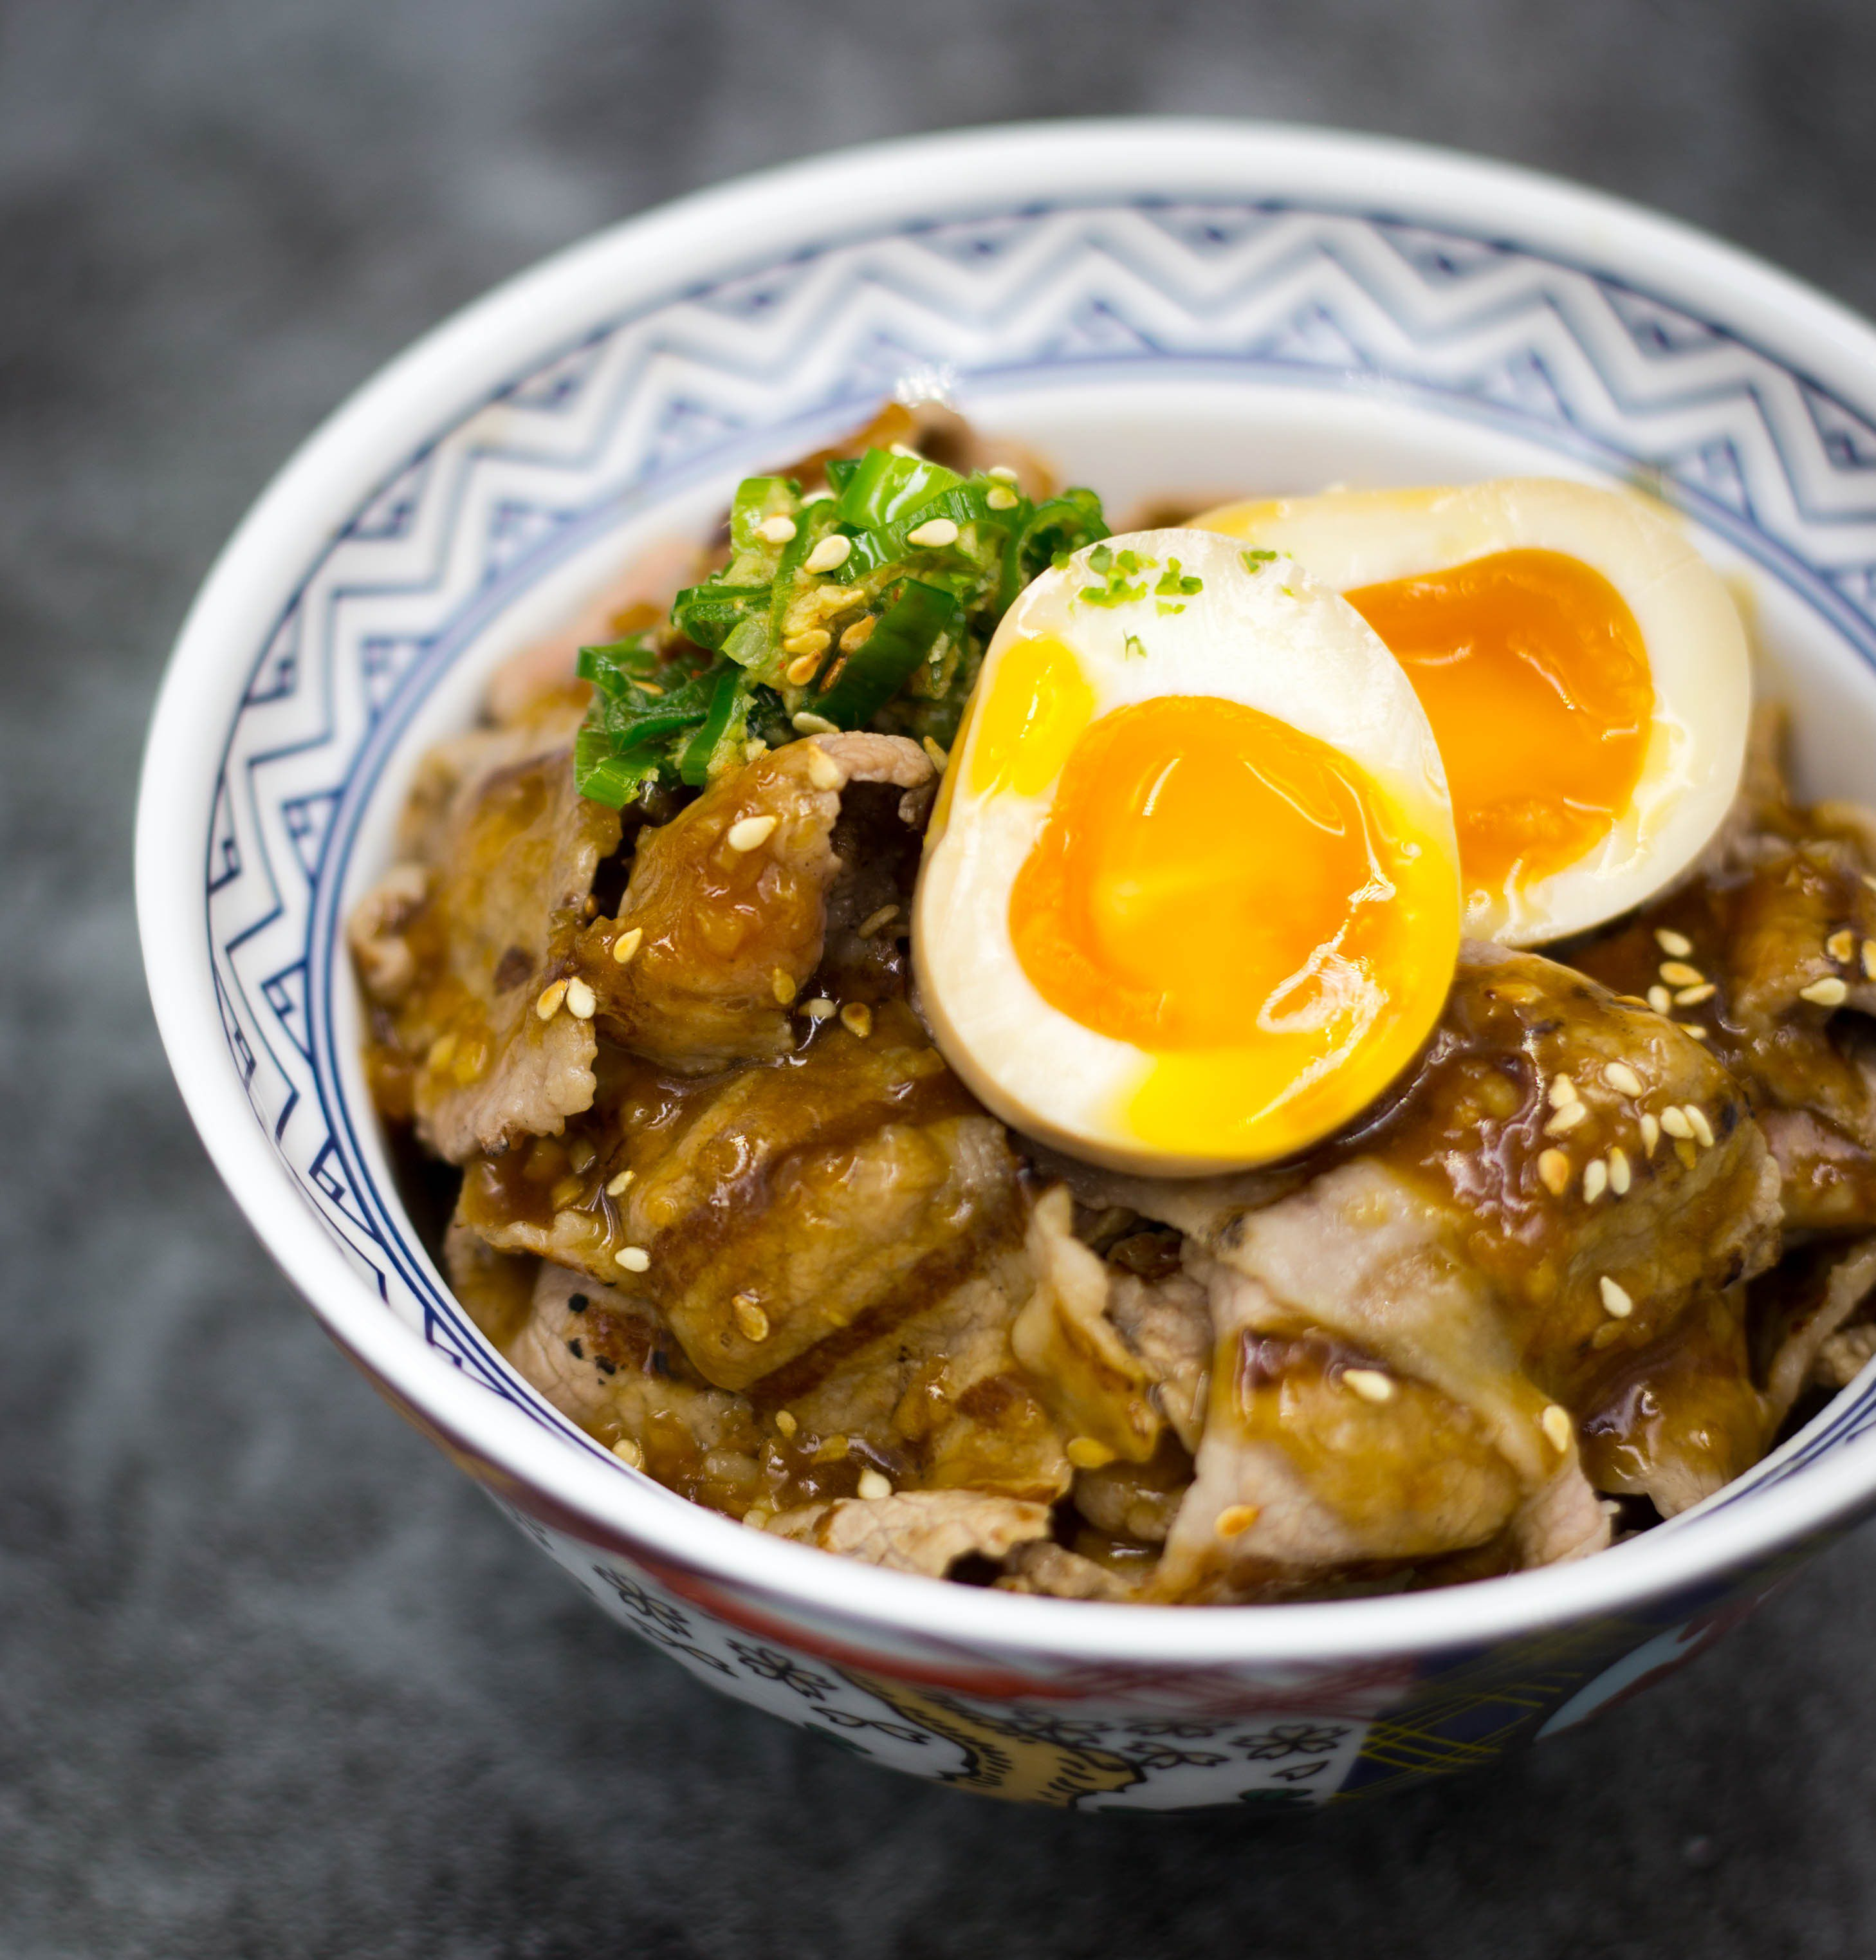 Grilled Beef Donburi